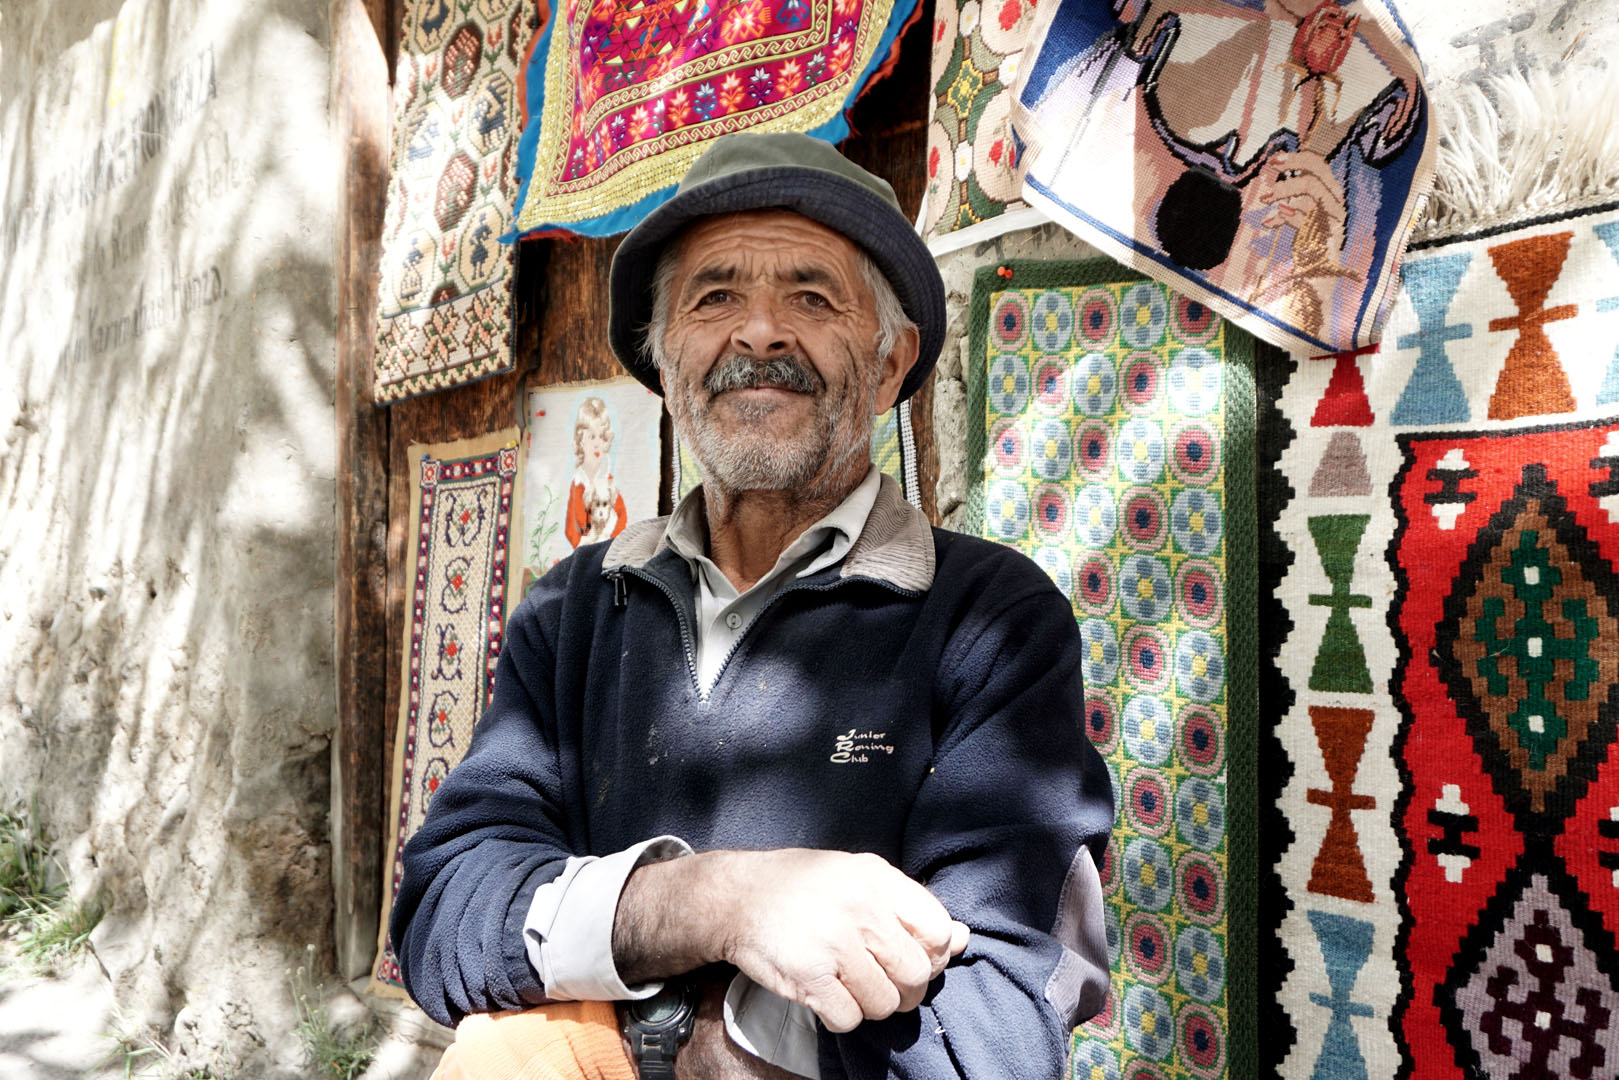 Local sales man in the Hunza Valley in Pakistan